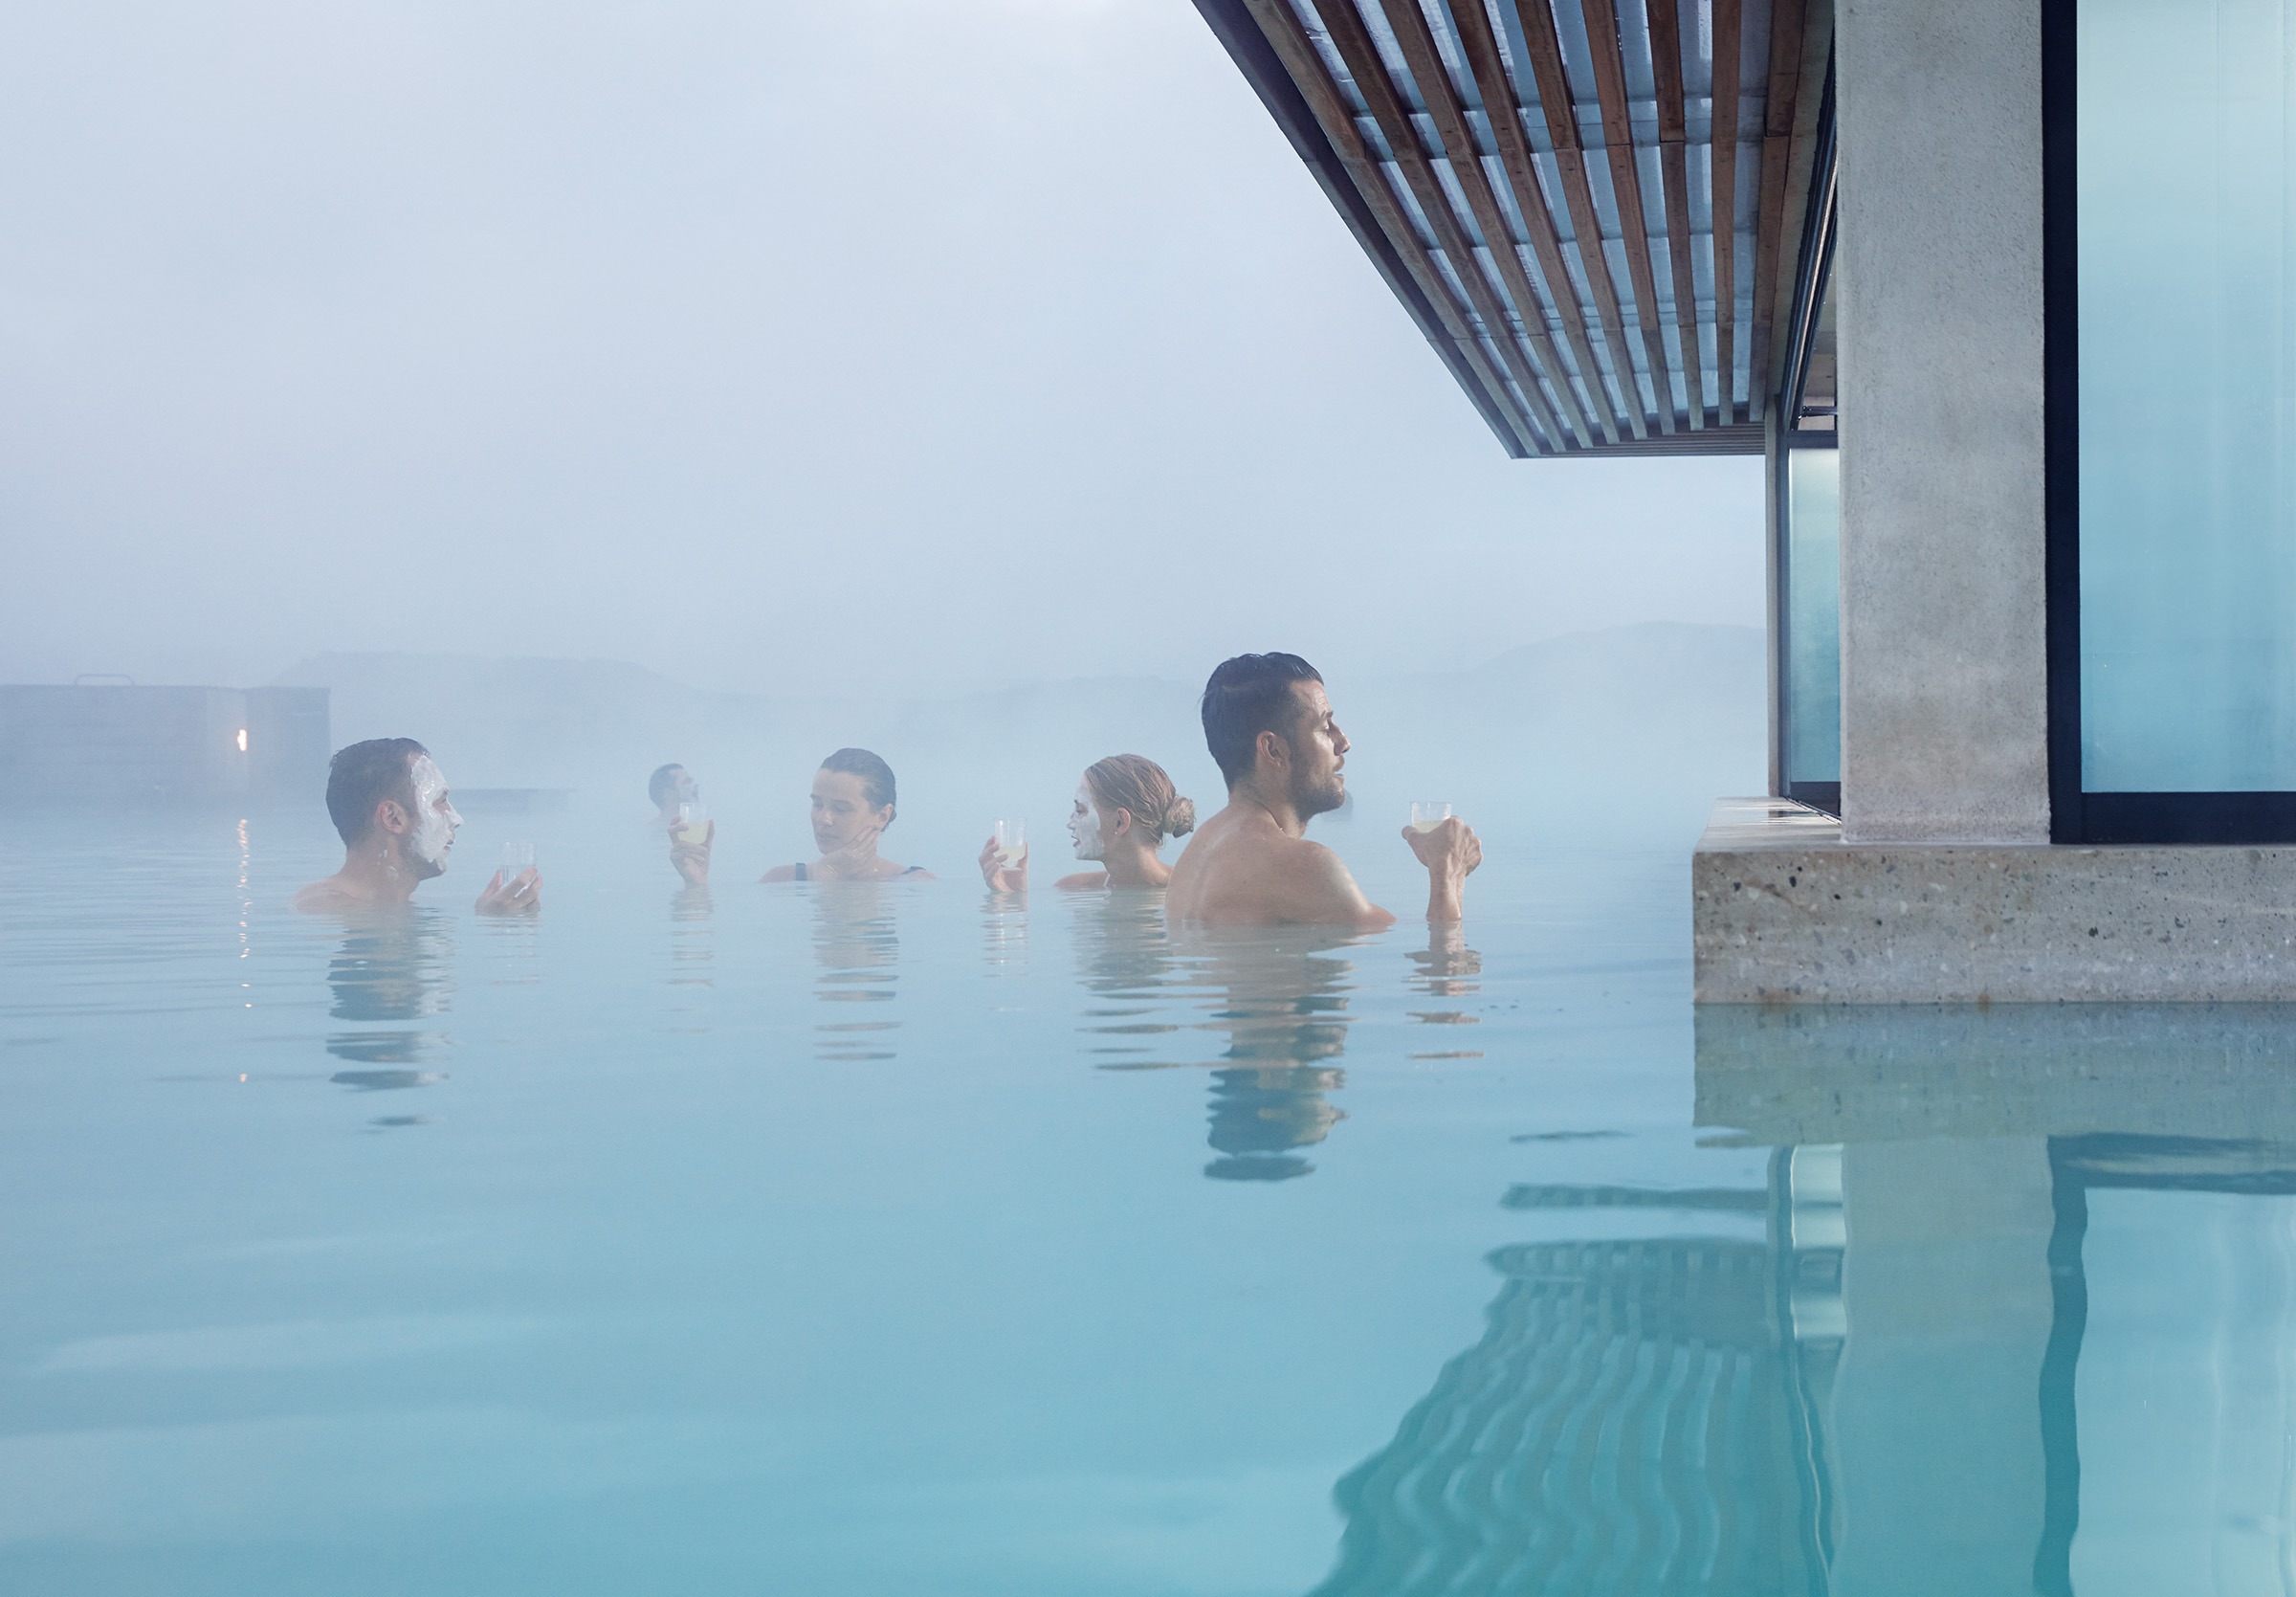 Guests at the Blue Lagoon can enjoy entry that includes a drink.